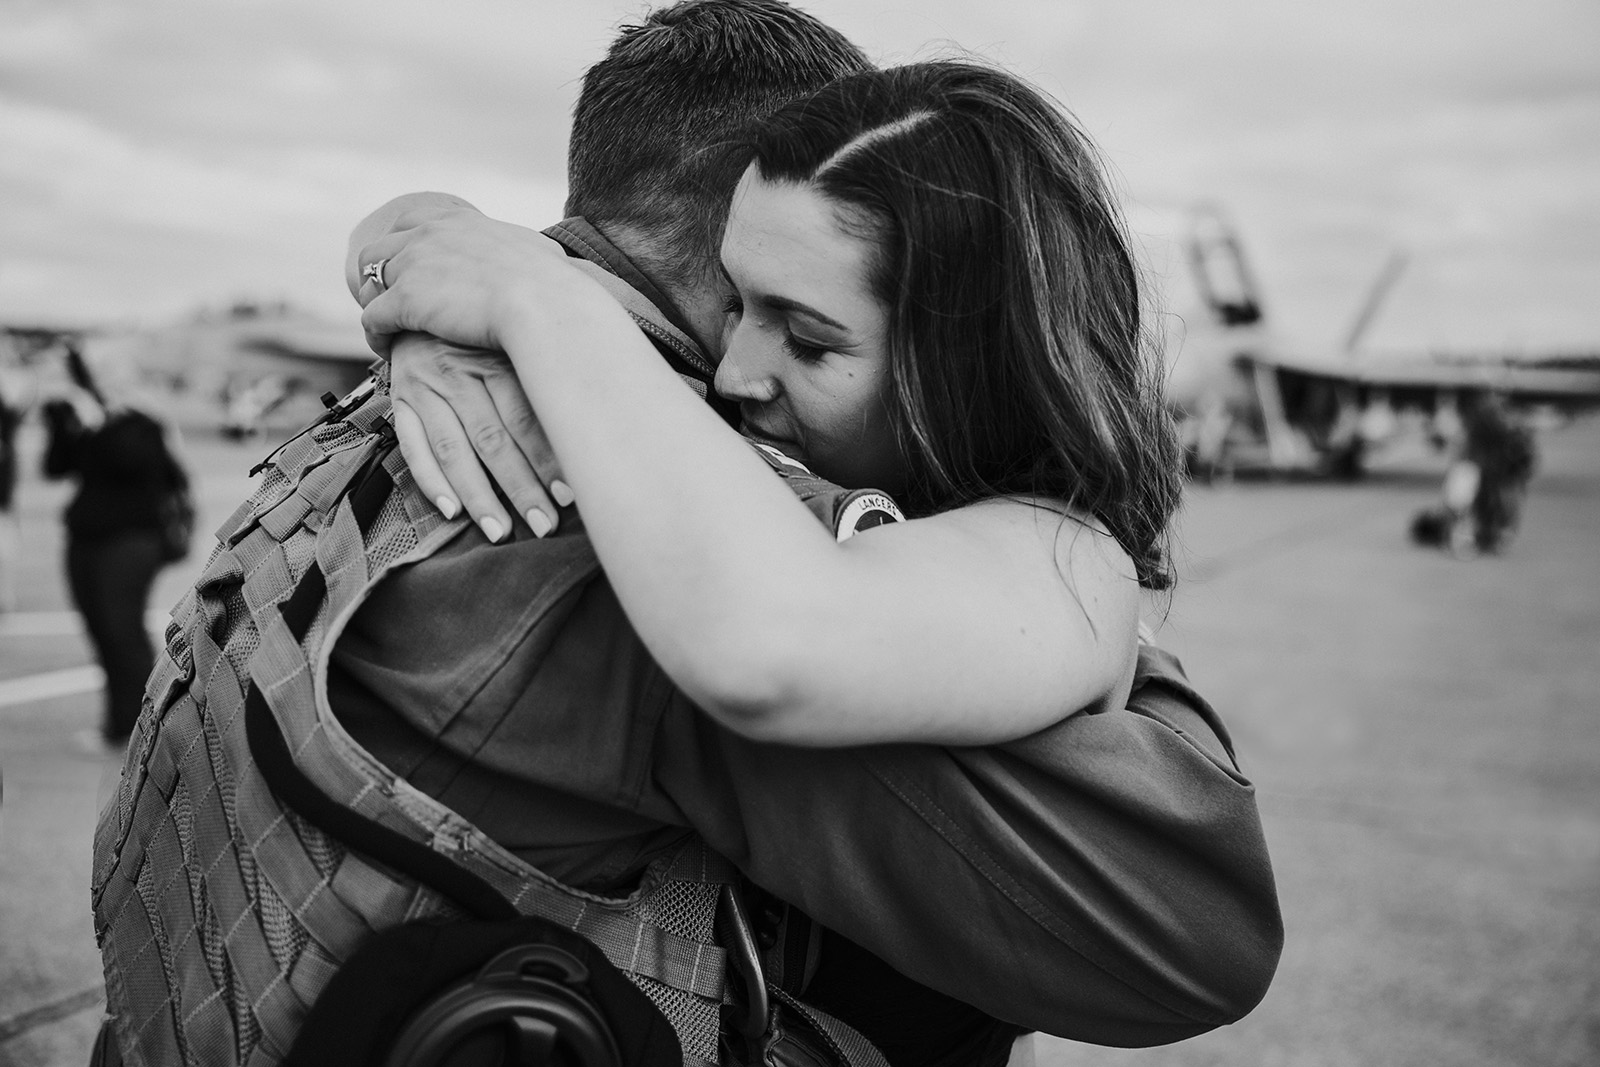 Photographing a military homecoming - tips for photographers